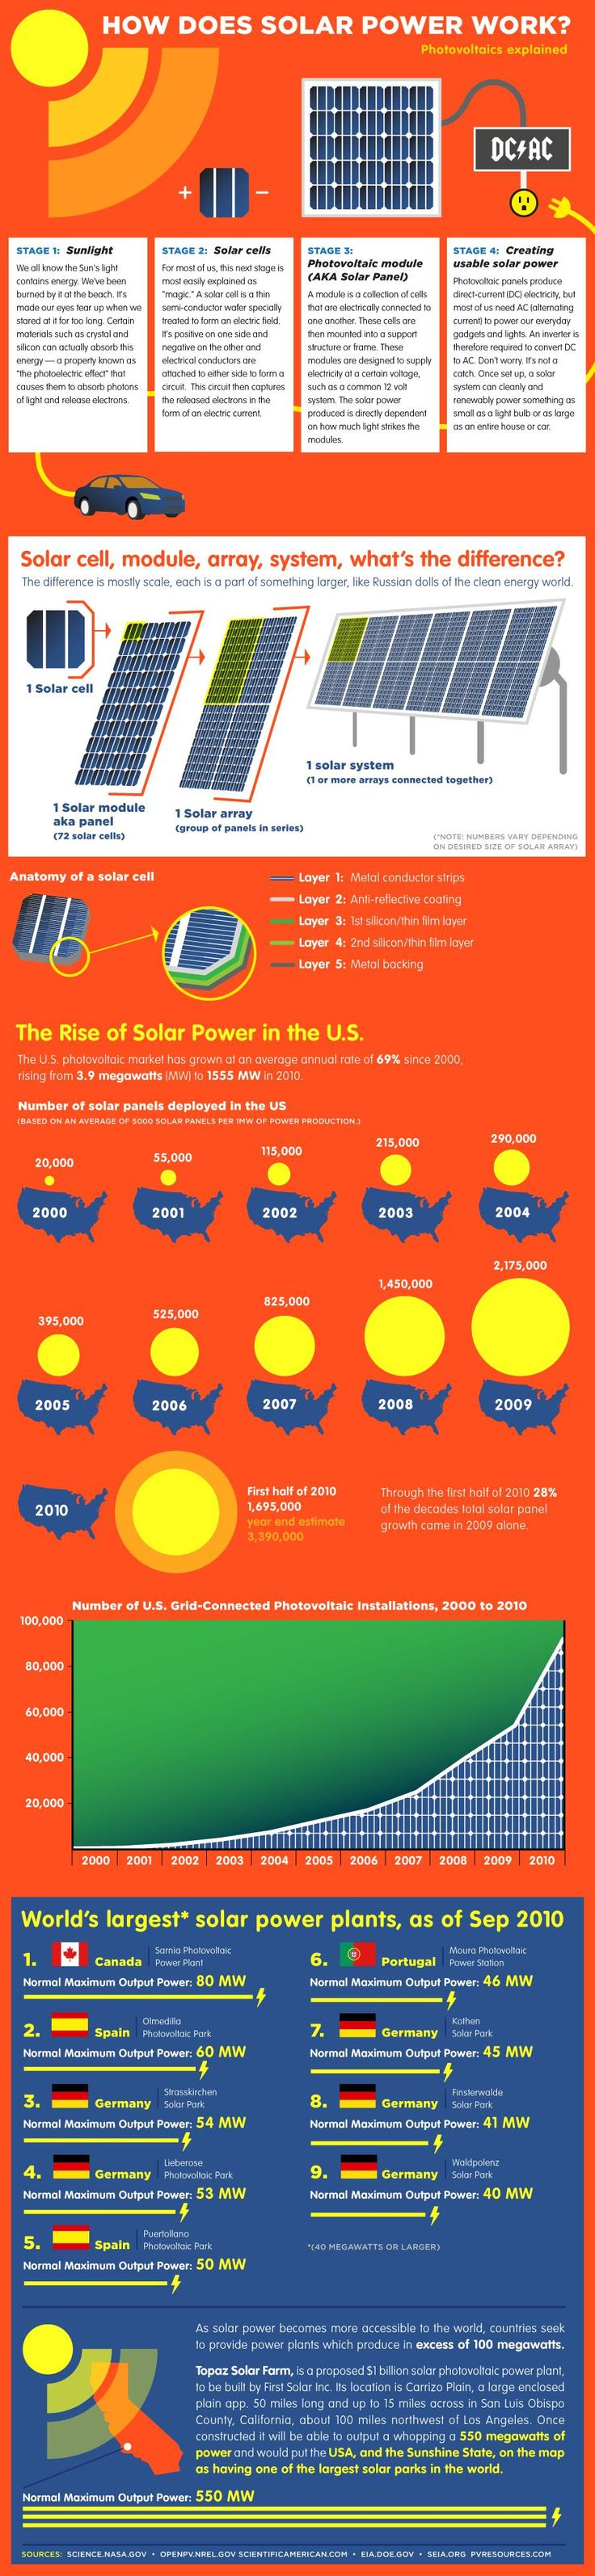 [How does solar power work?] http://solarenergyfactsblog.com/how-does-solar-power-work/